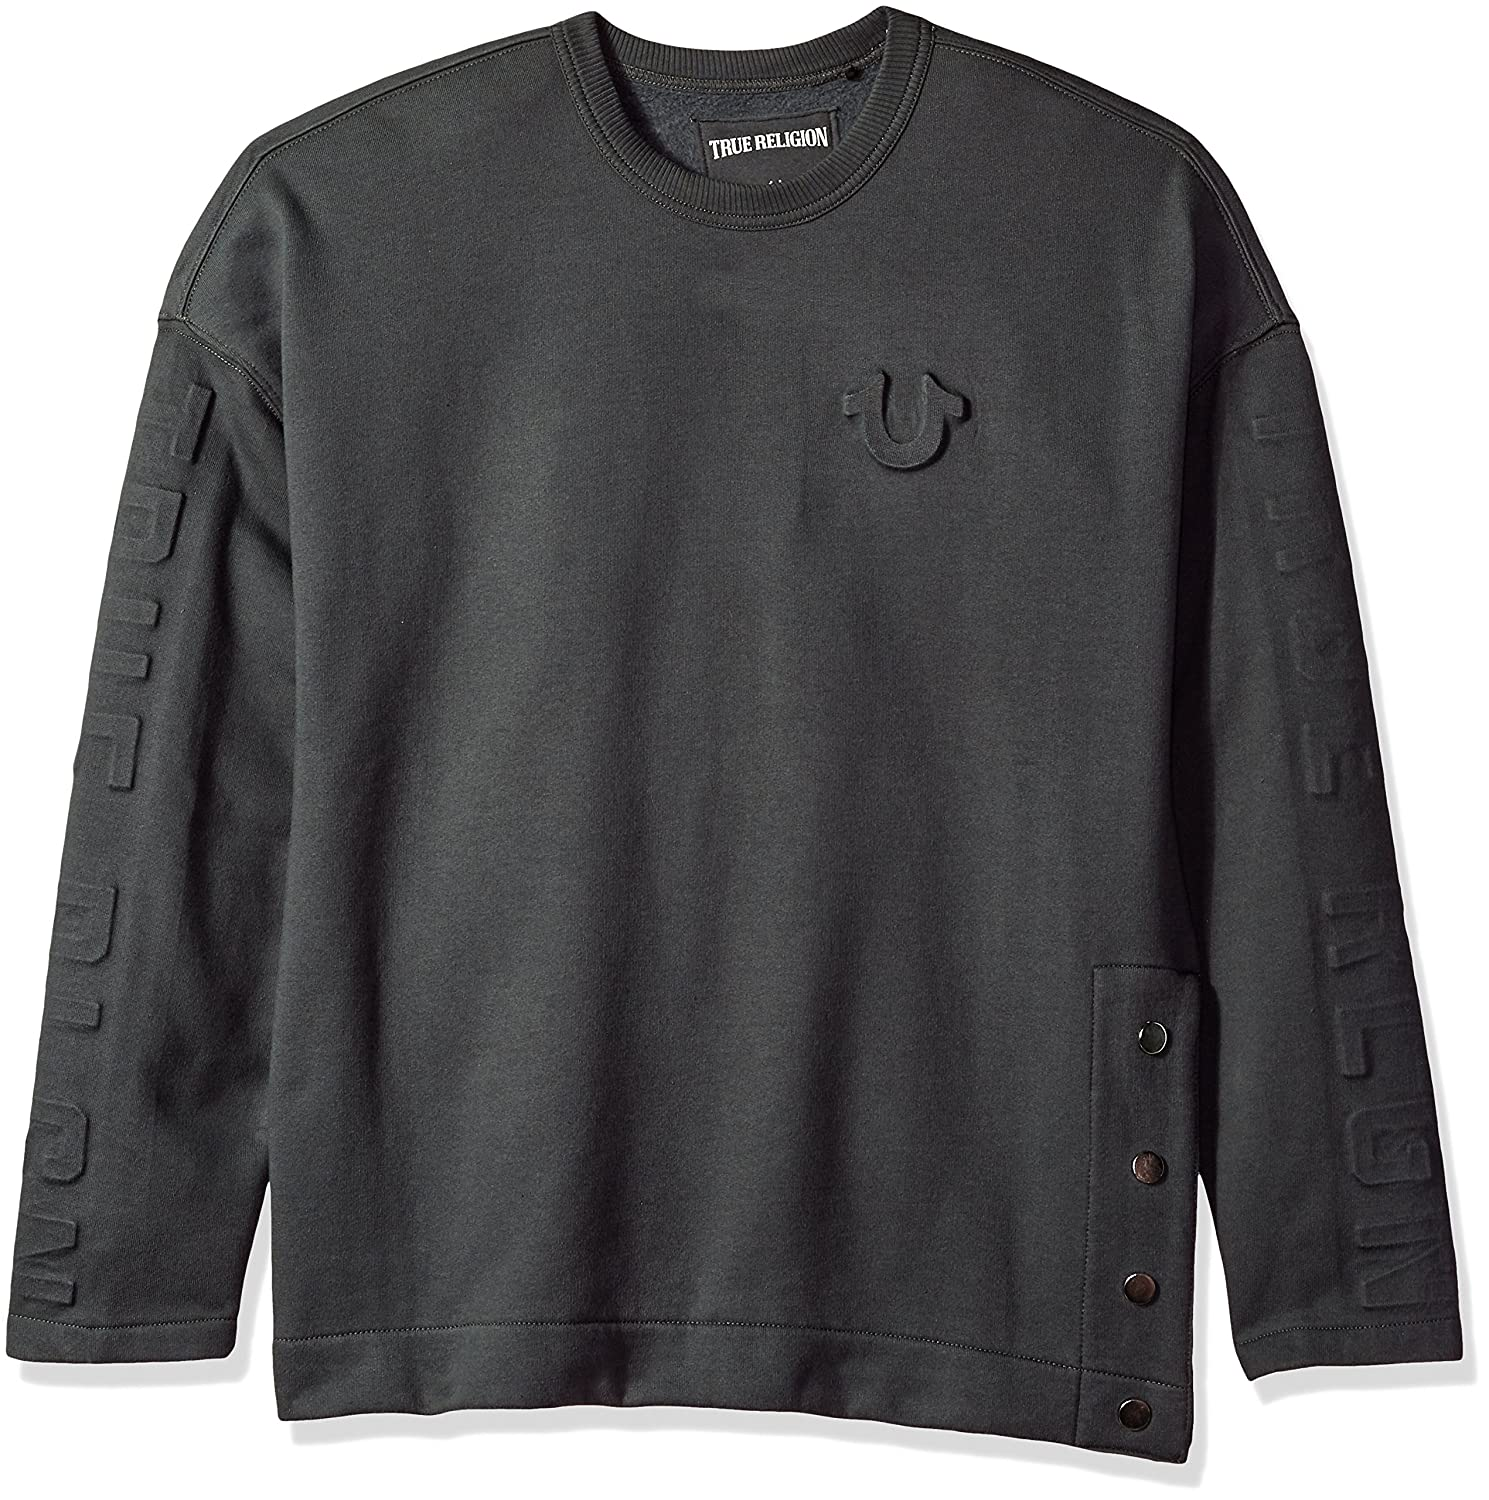 ec524cc60 Amazon.com  True Religion Men s Oversized Embossed Fleece Sweatshirt   Clothing